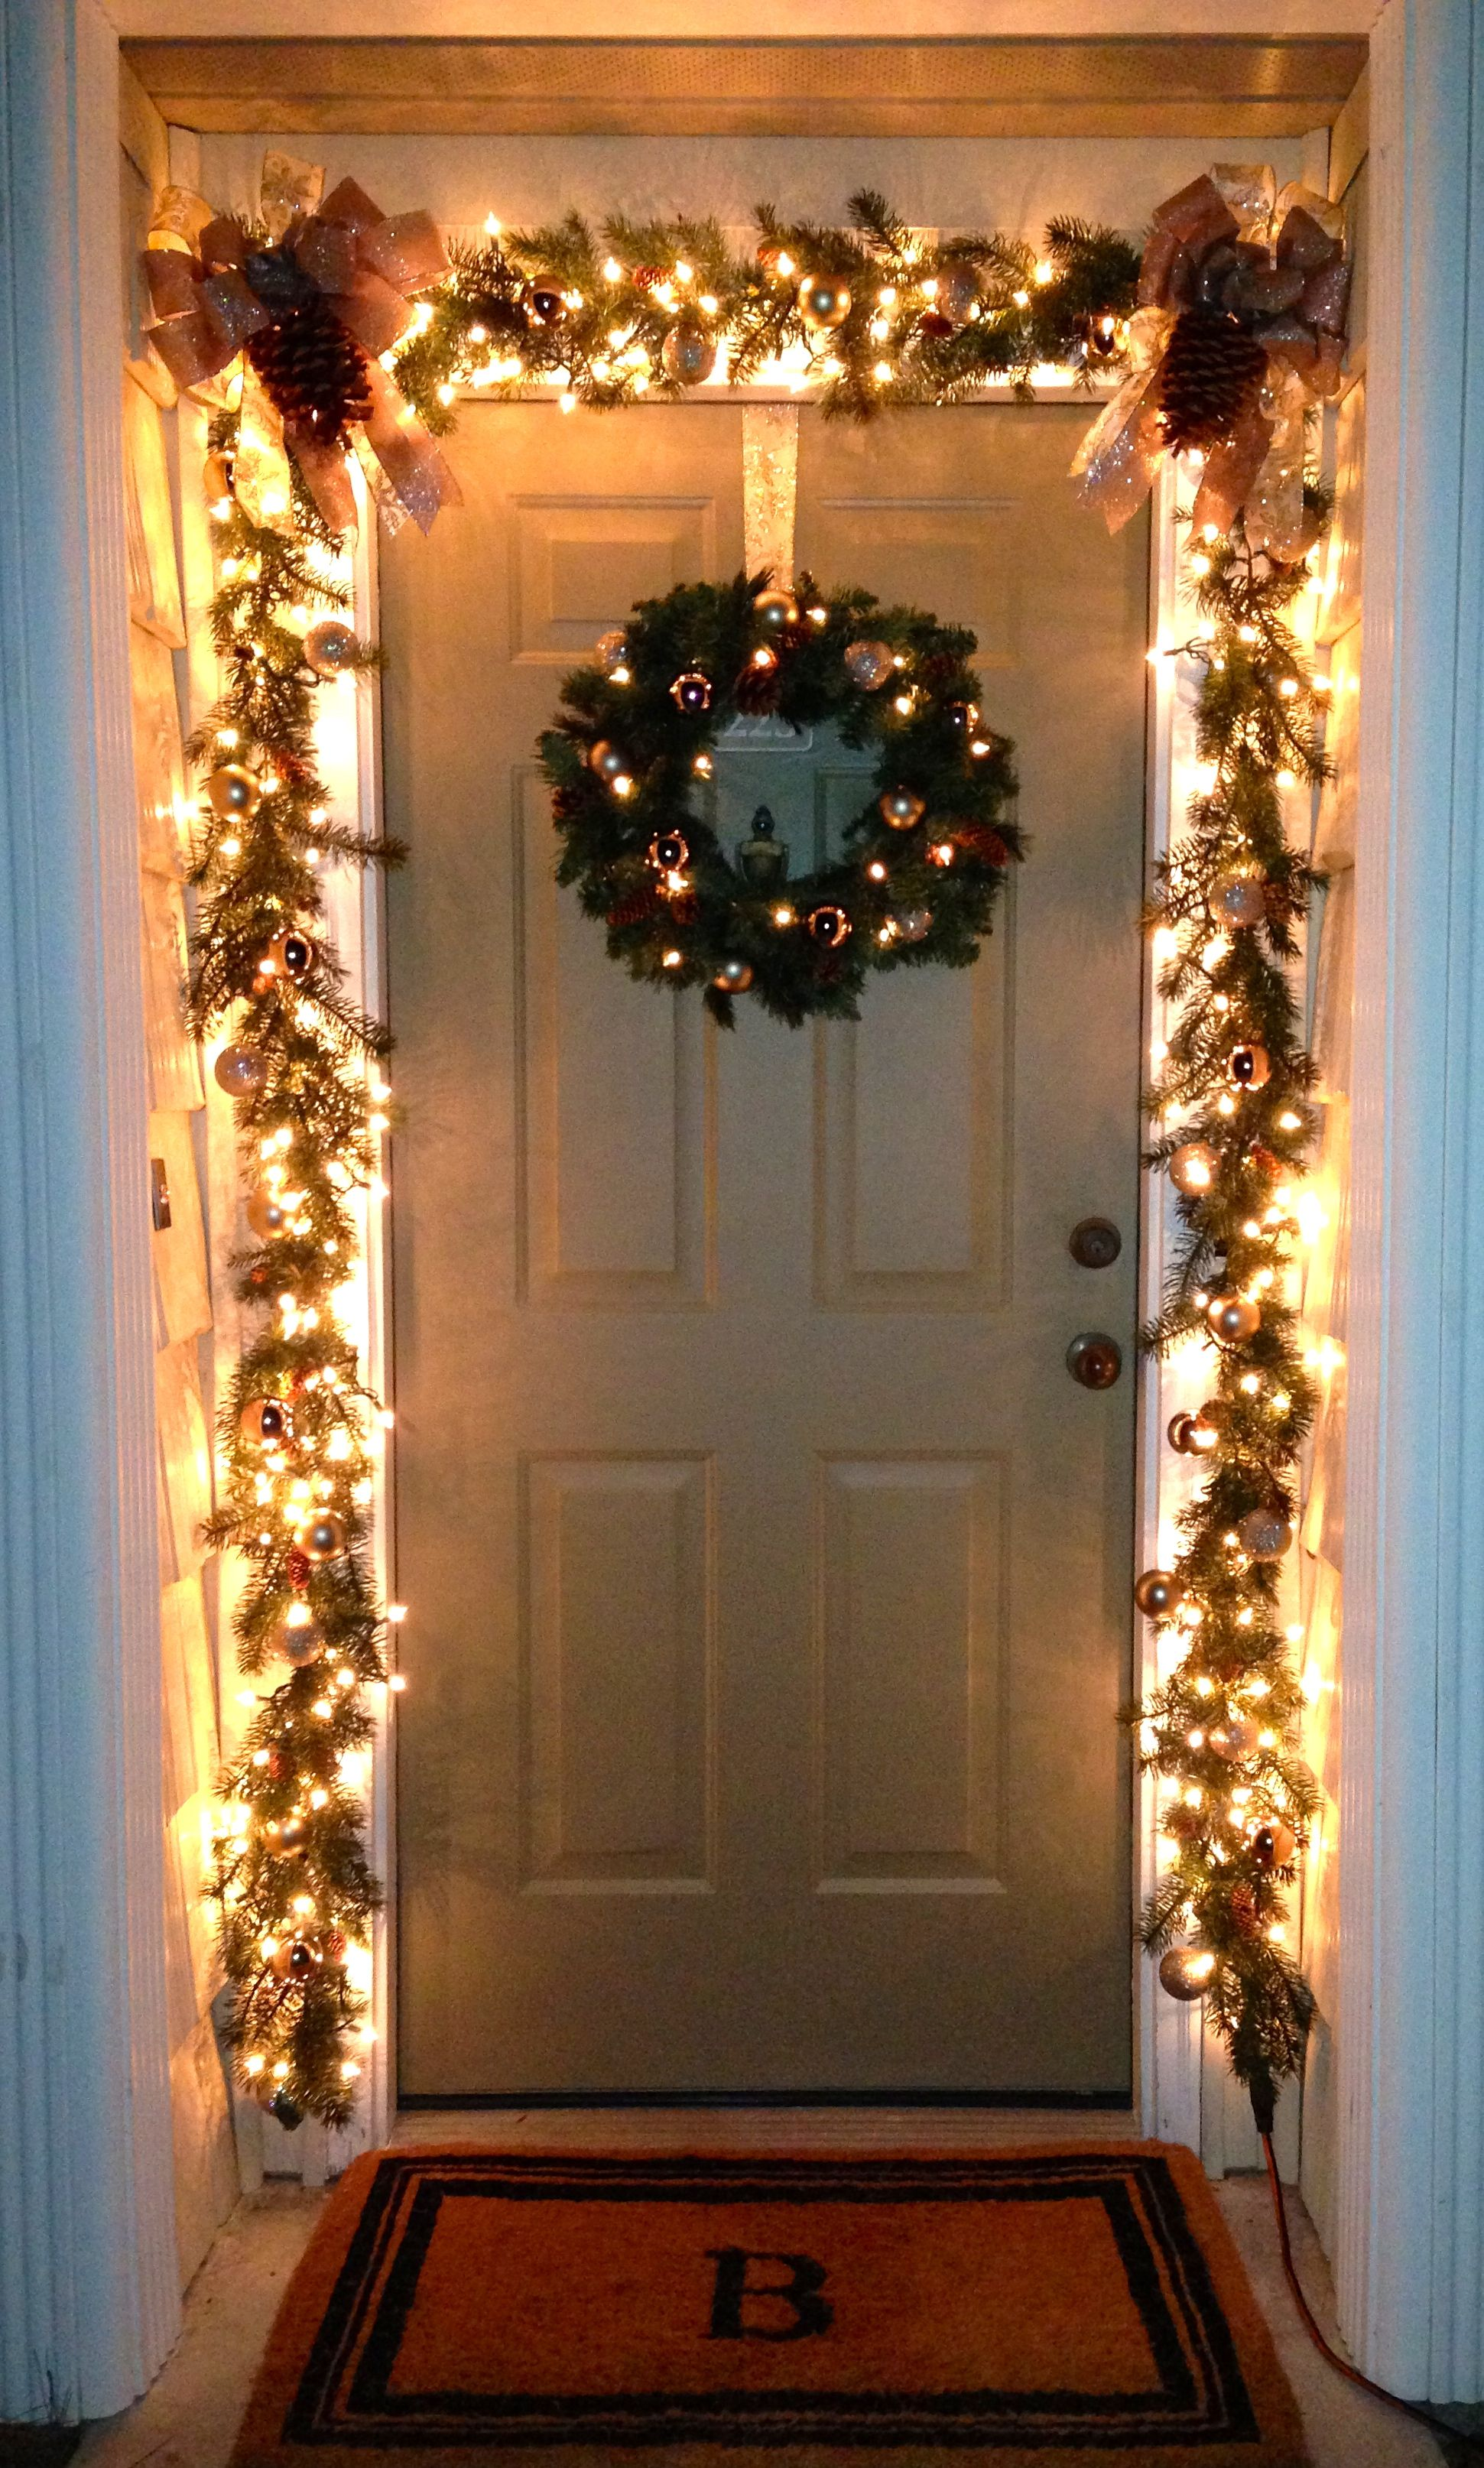 Our front door porch Christmas decorations this year beautiful